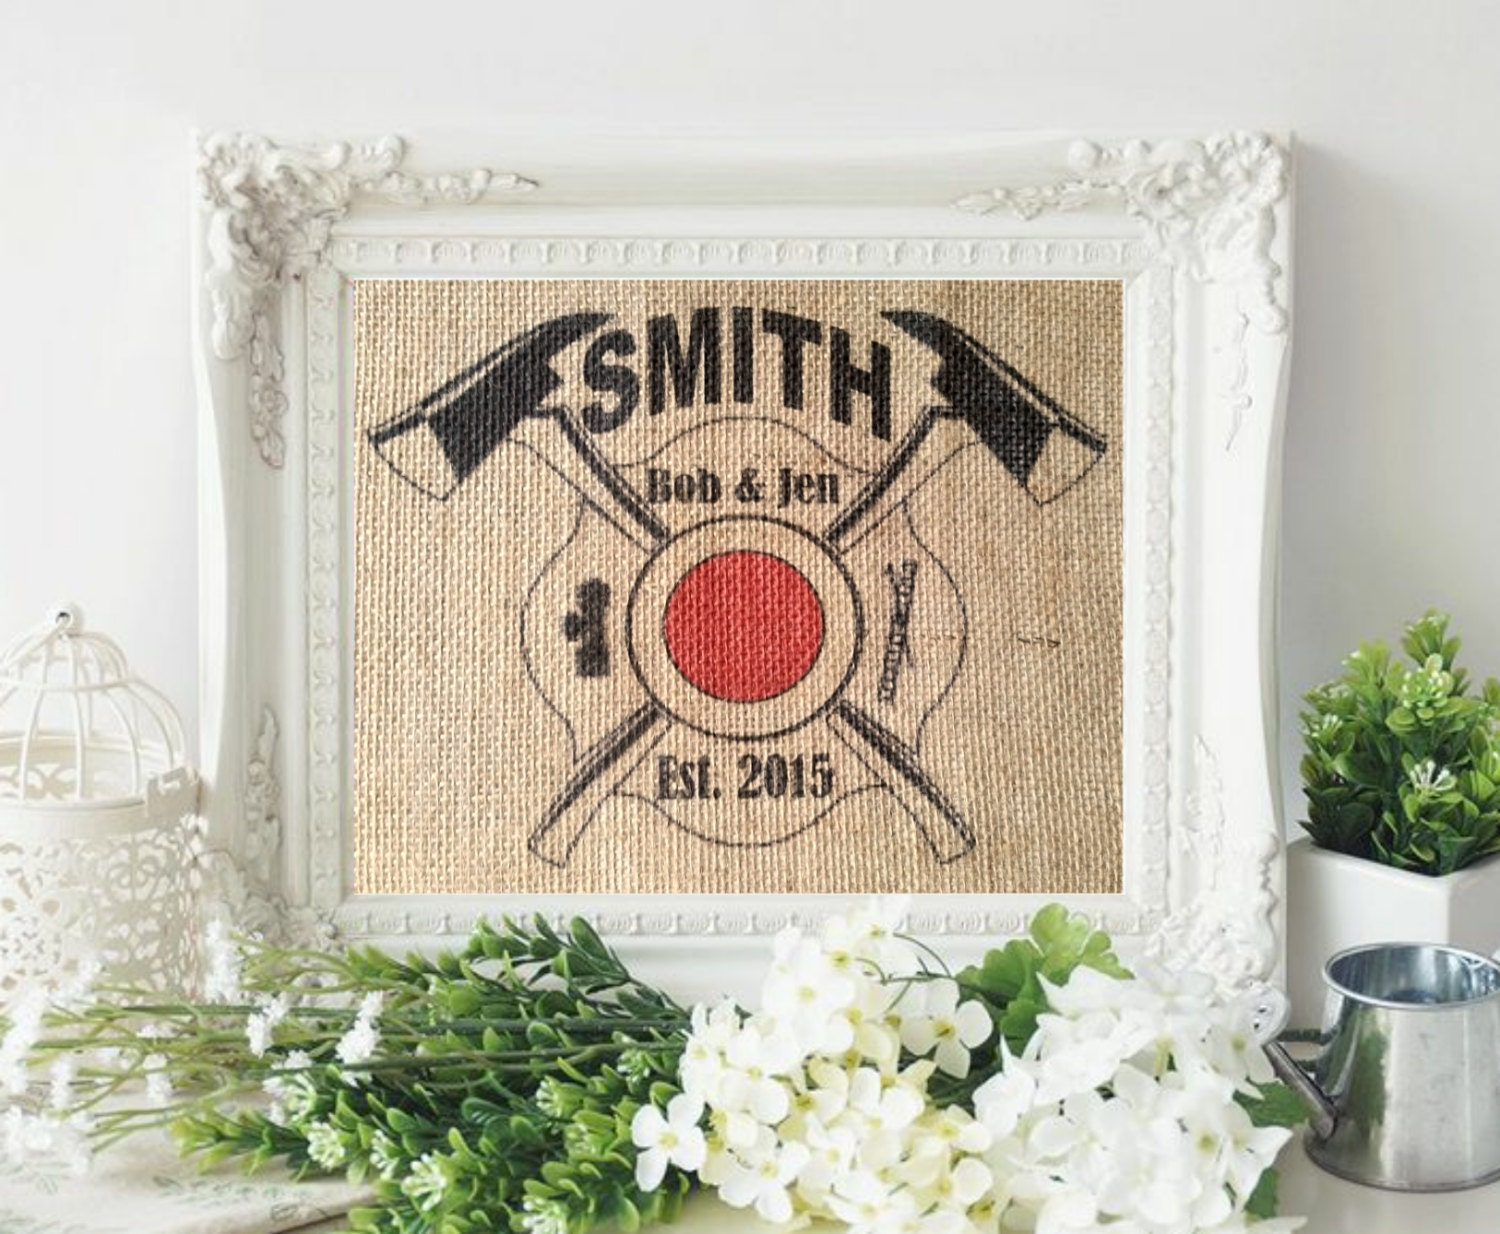 Best Man Cave Gifts : Personalized firefighter gift man cave wall by